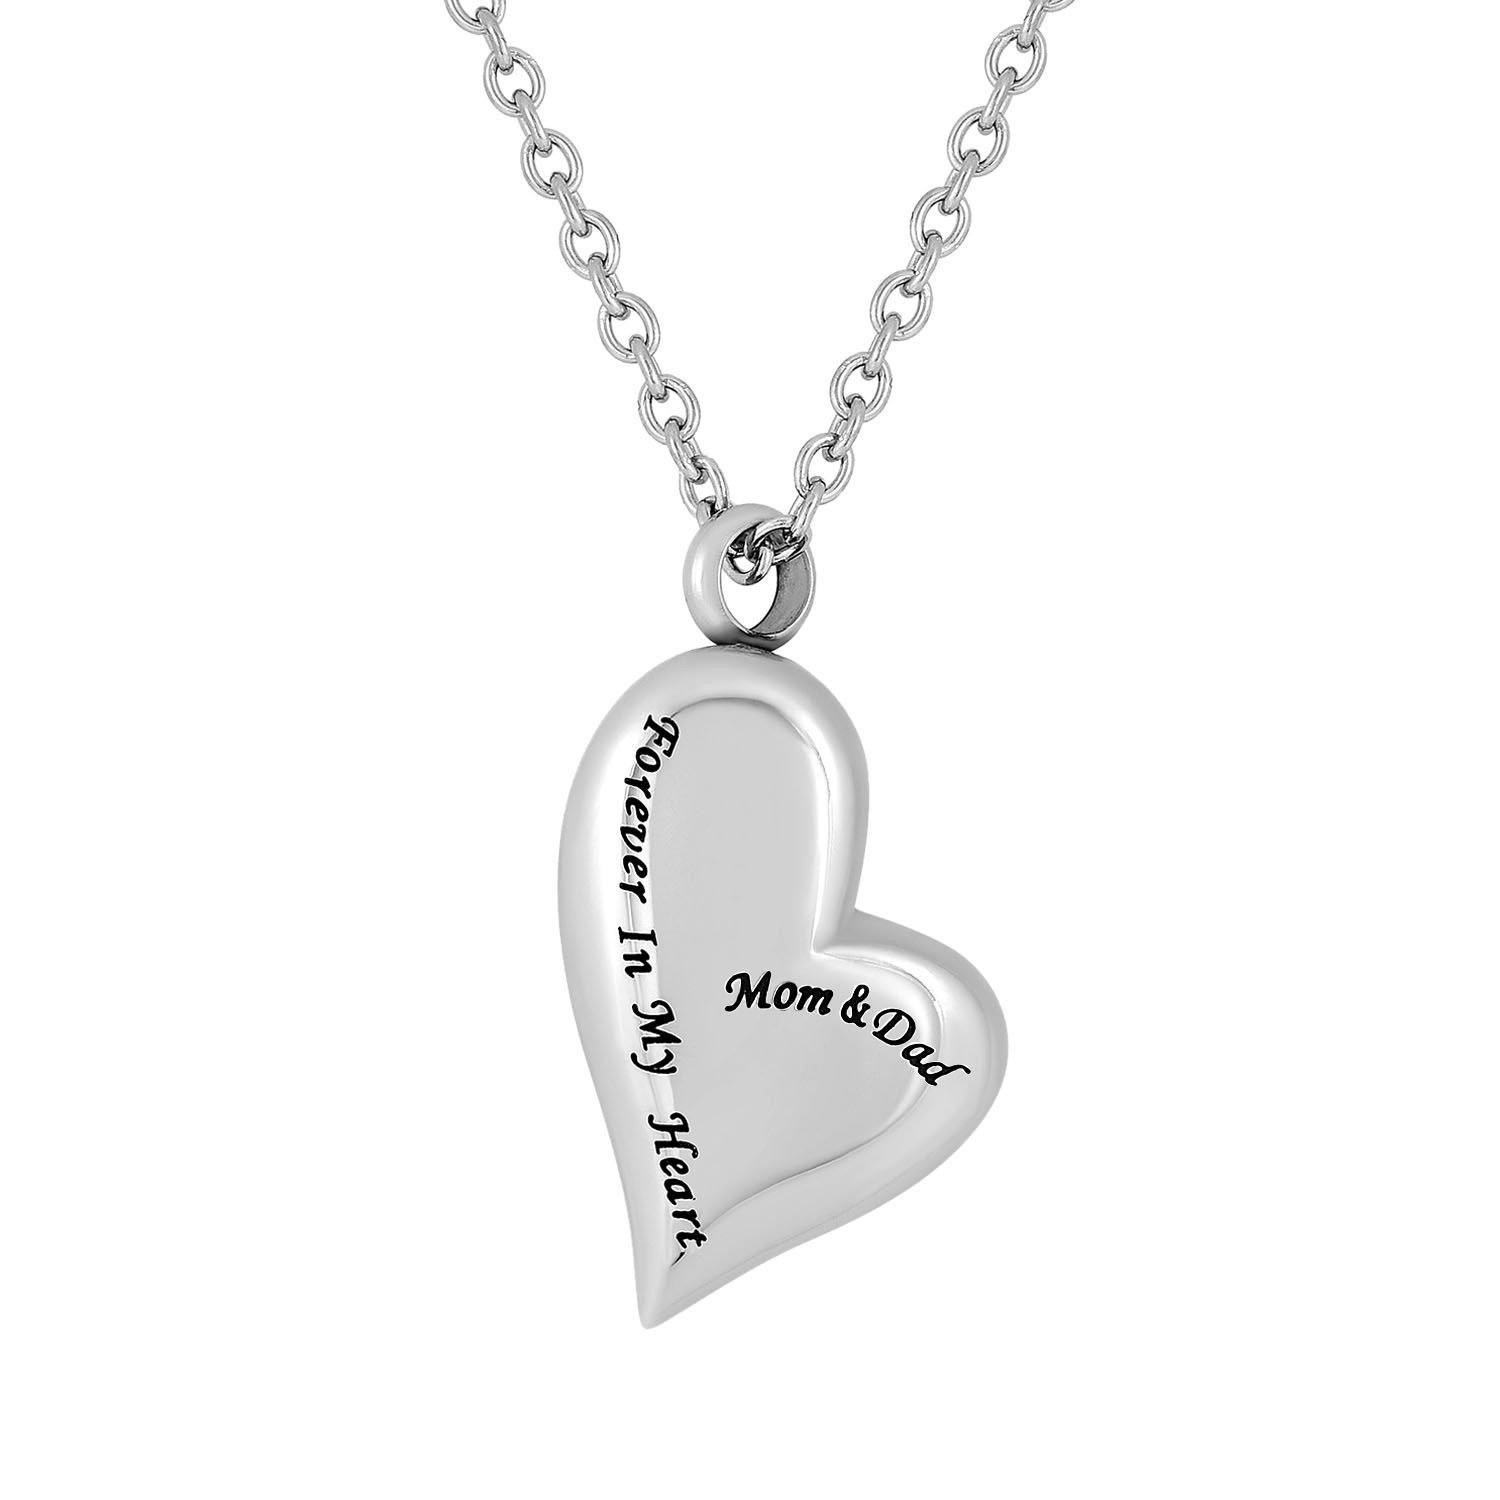 Cremation Jewelry Necklace for Ashes - Mom And Dad Forever In My Heart